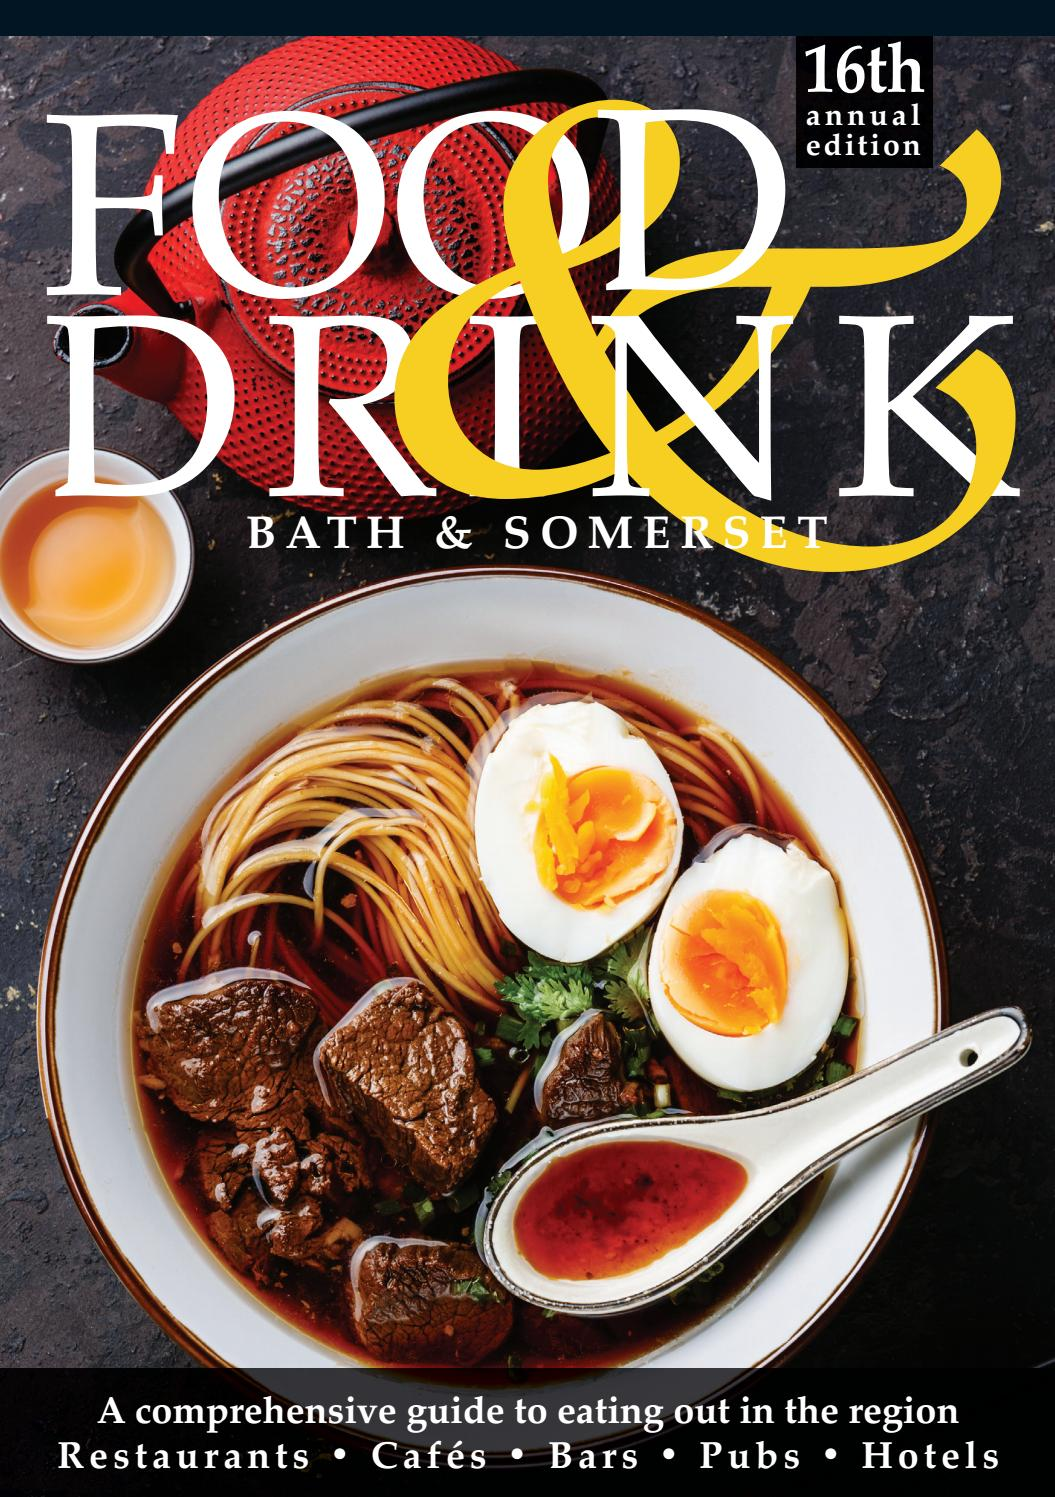 Cuisine Royale Guide Bath Somerset Food Drink Guide 2018 By Food Drink Guides Issuu